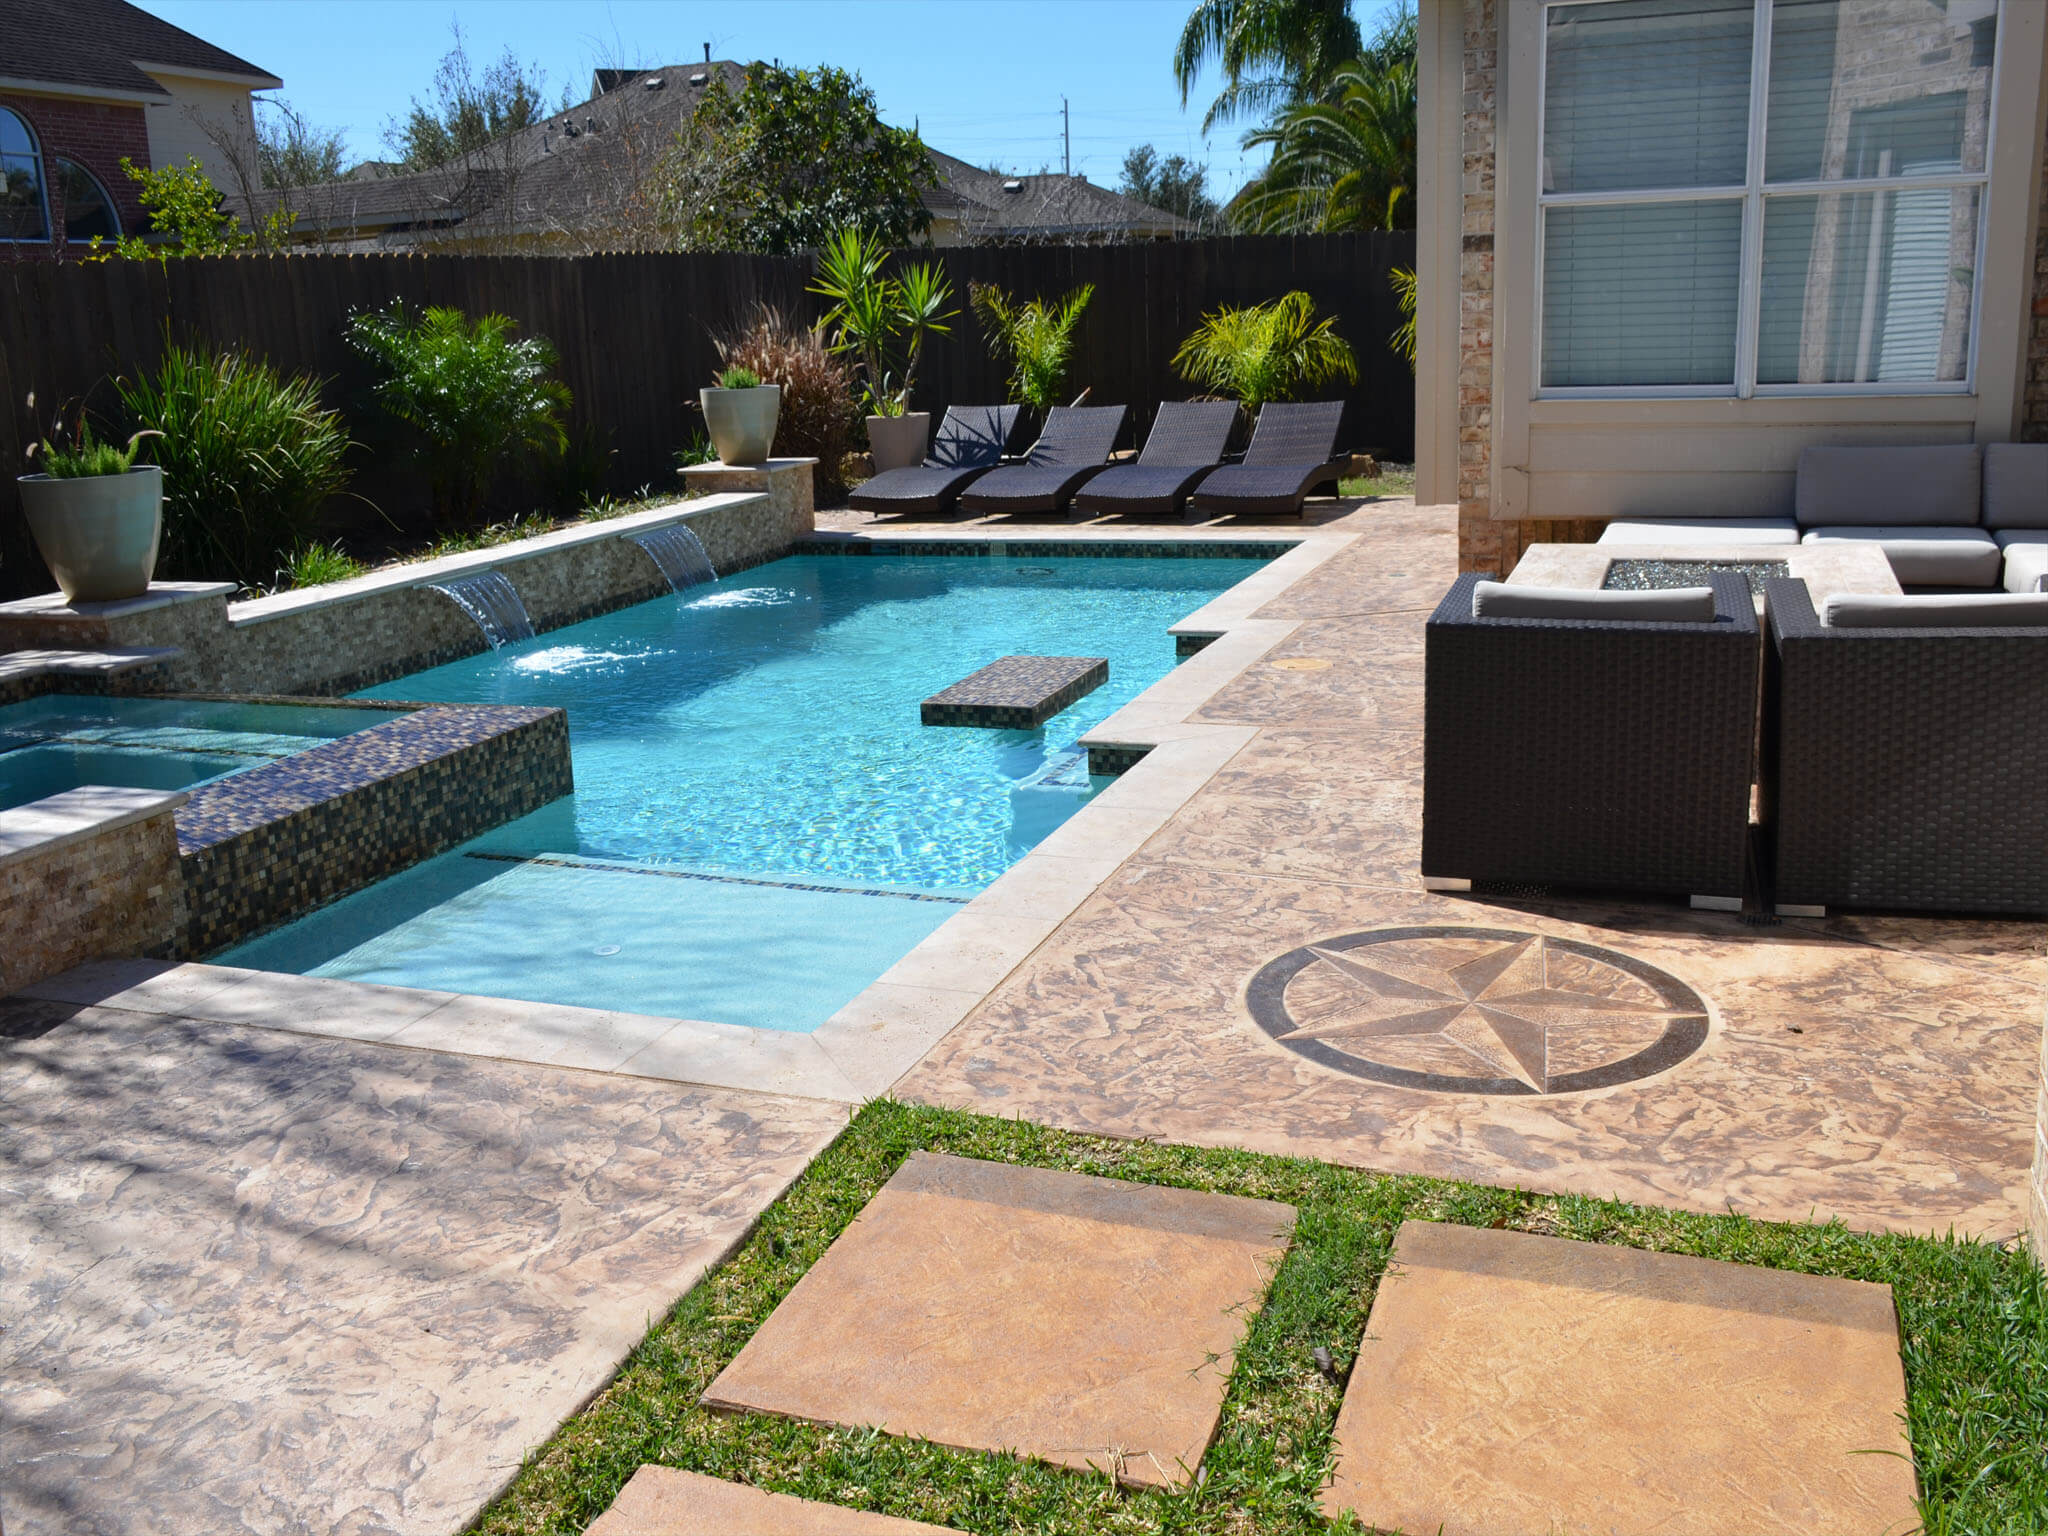 Custom Pool Designer Houston - Luxury Pool Renovation ...